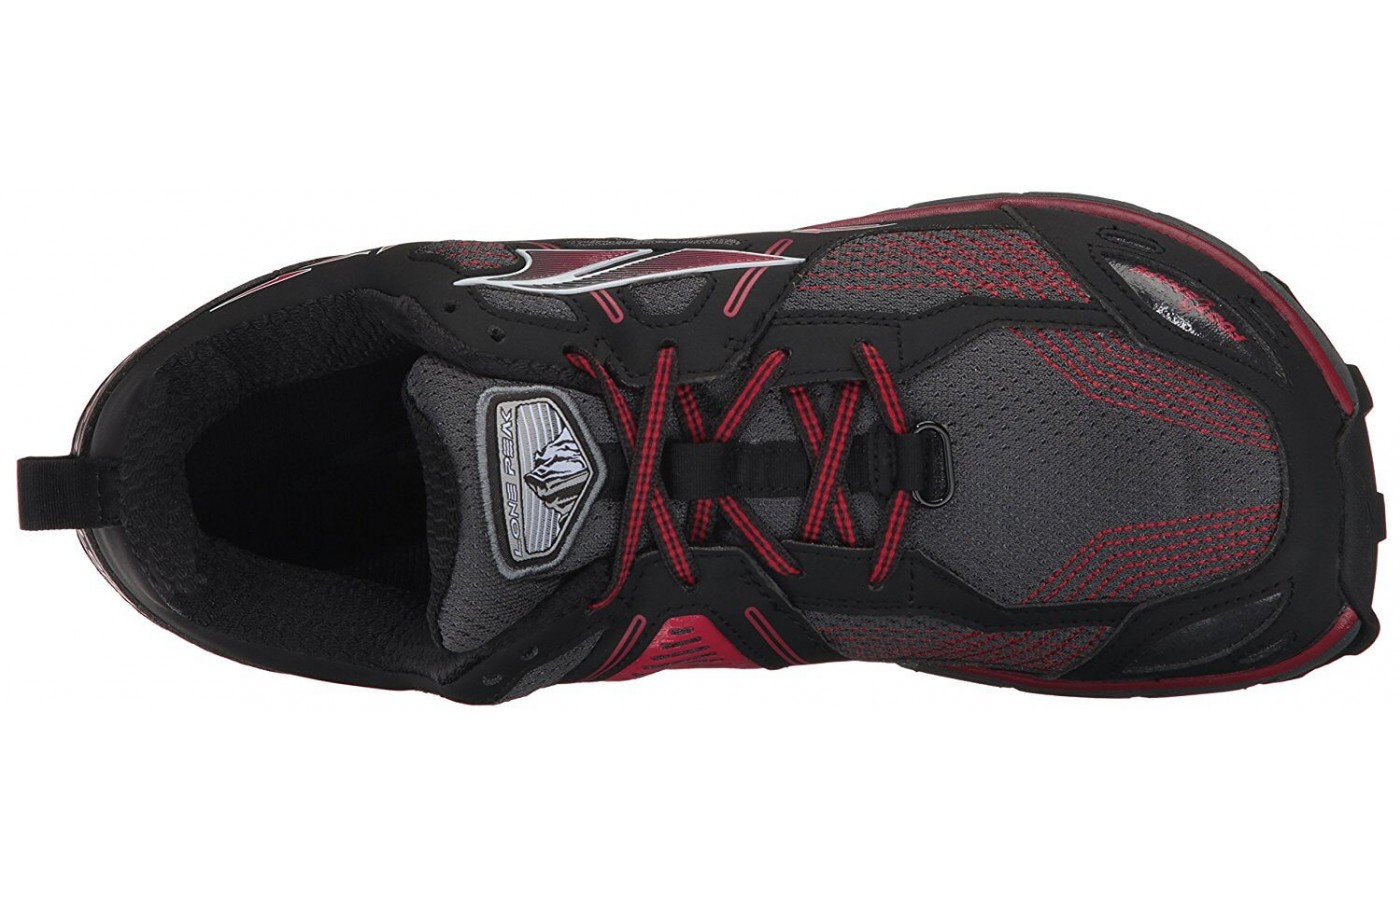 The Altra Lone Peak 3.5 features a FootShape toe box